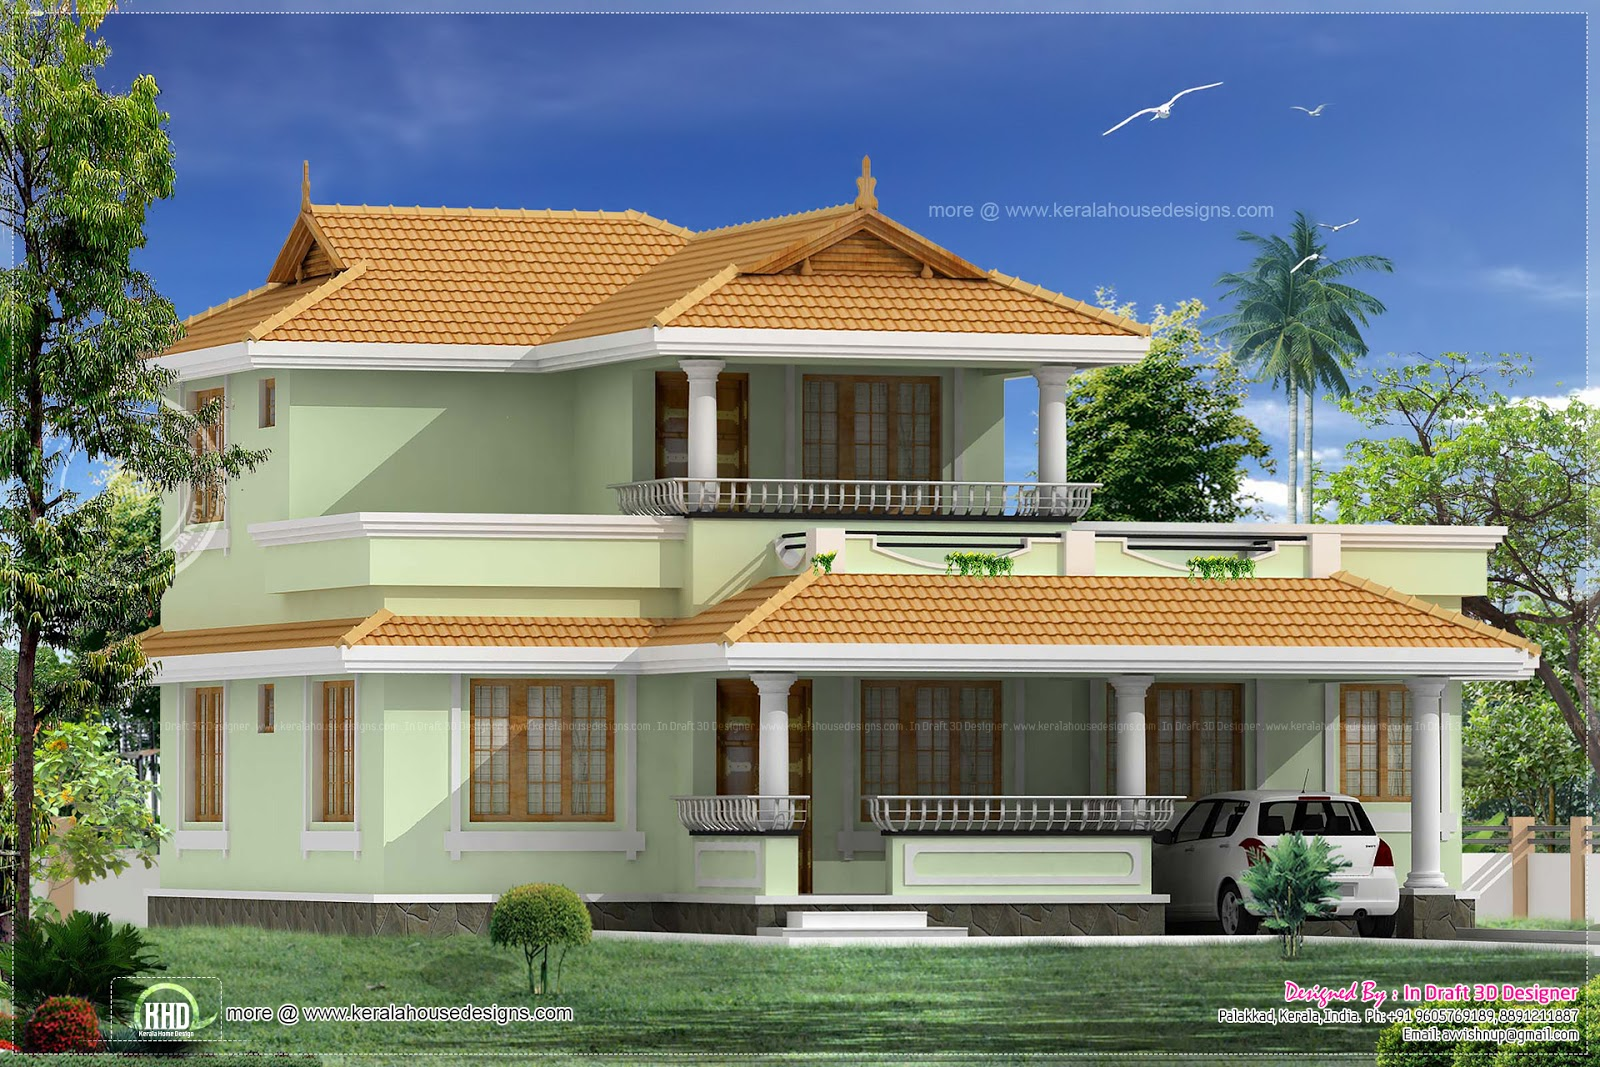 square yards designed by in draft 3d designer palakkad kerala